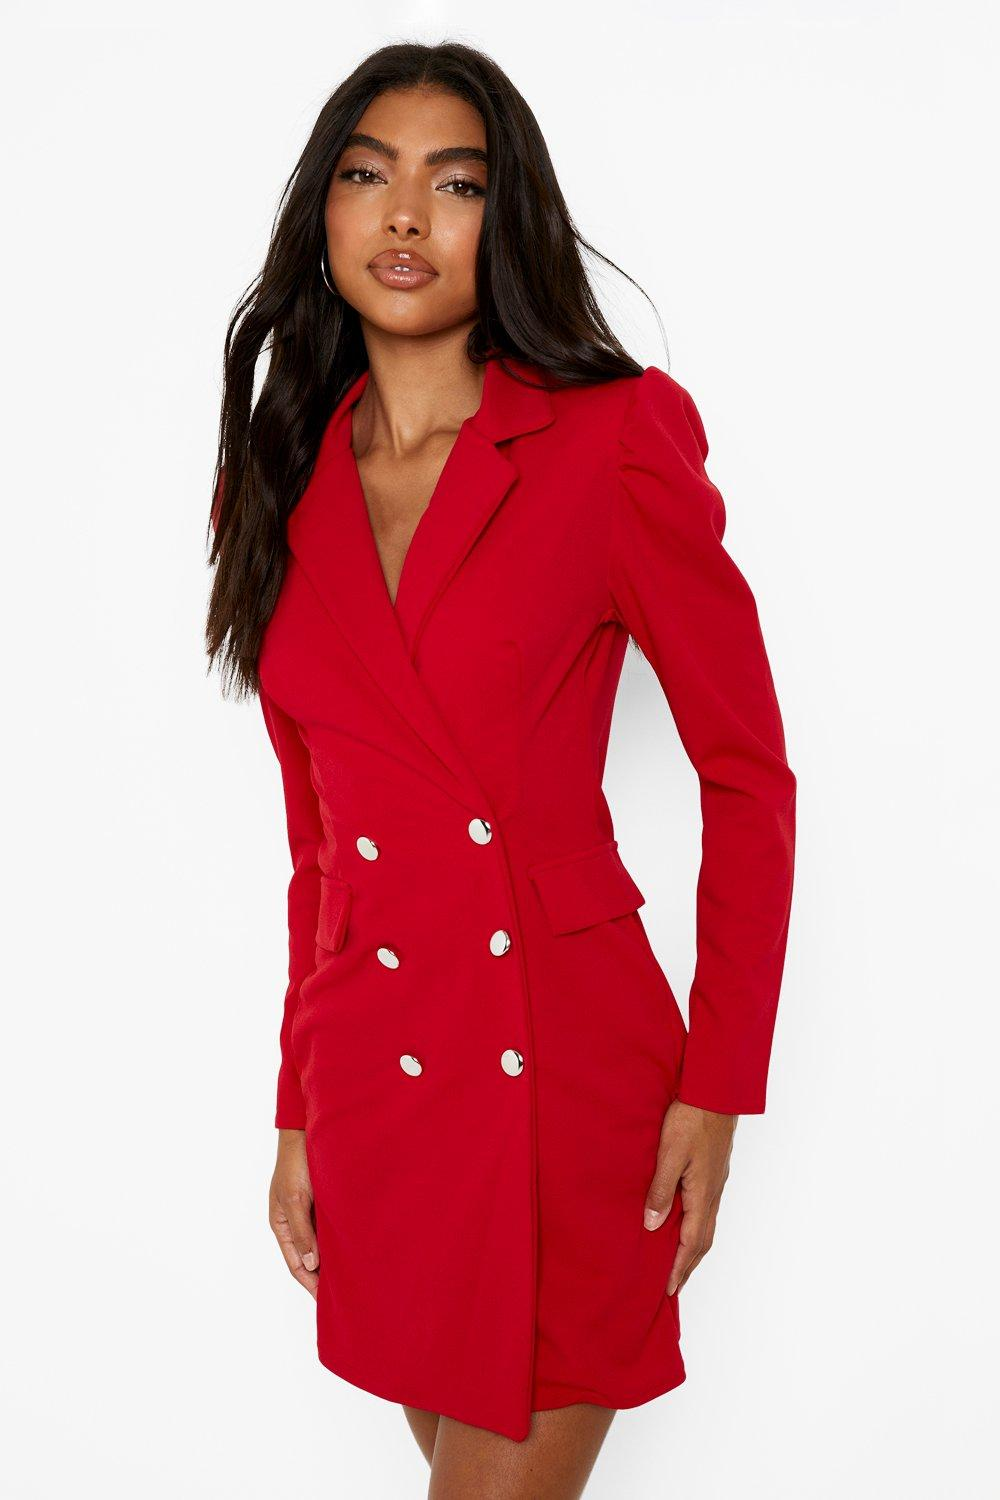 80s Dresses | Casual to Party Dresses Womens Tall Puff Sleeve Blazer Dress - Red - 14 $28.00 AT vintagedancer.com